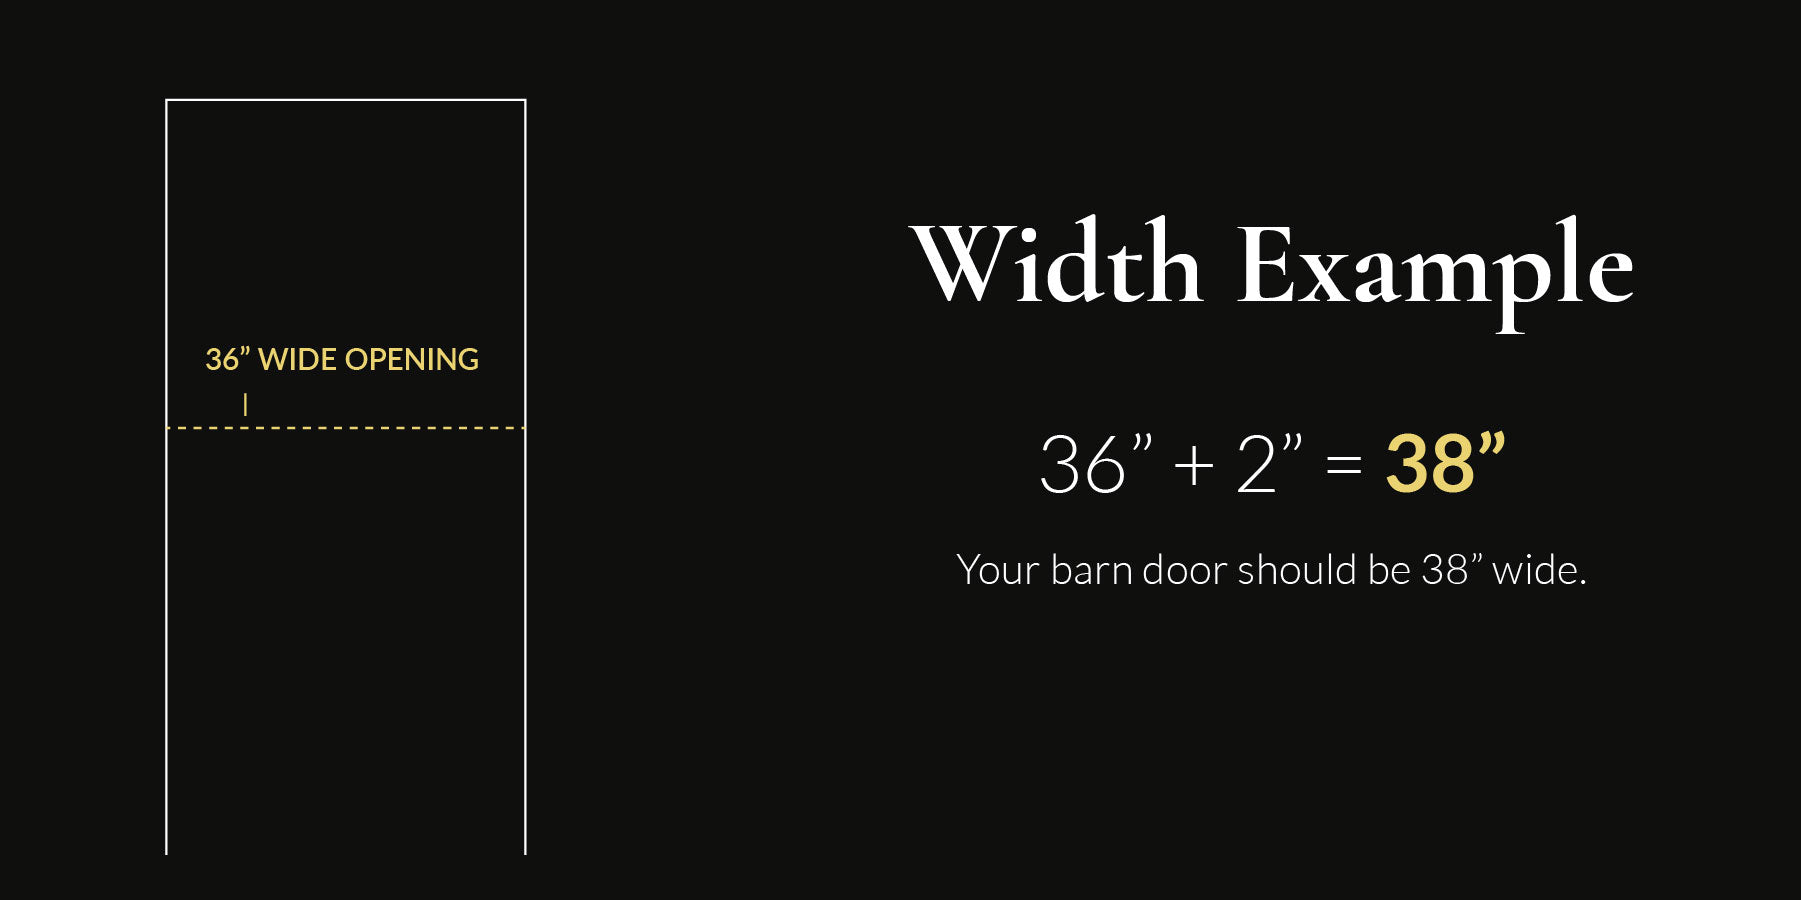 Barn door width measurement example with illustration. Explanation and description of the instructions are below the image.